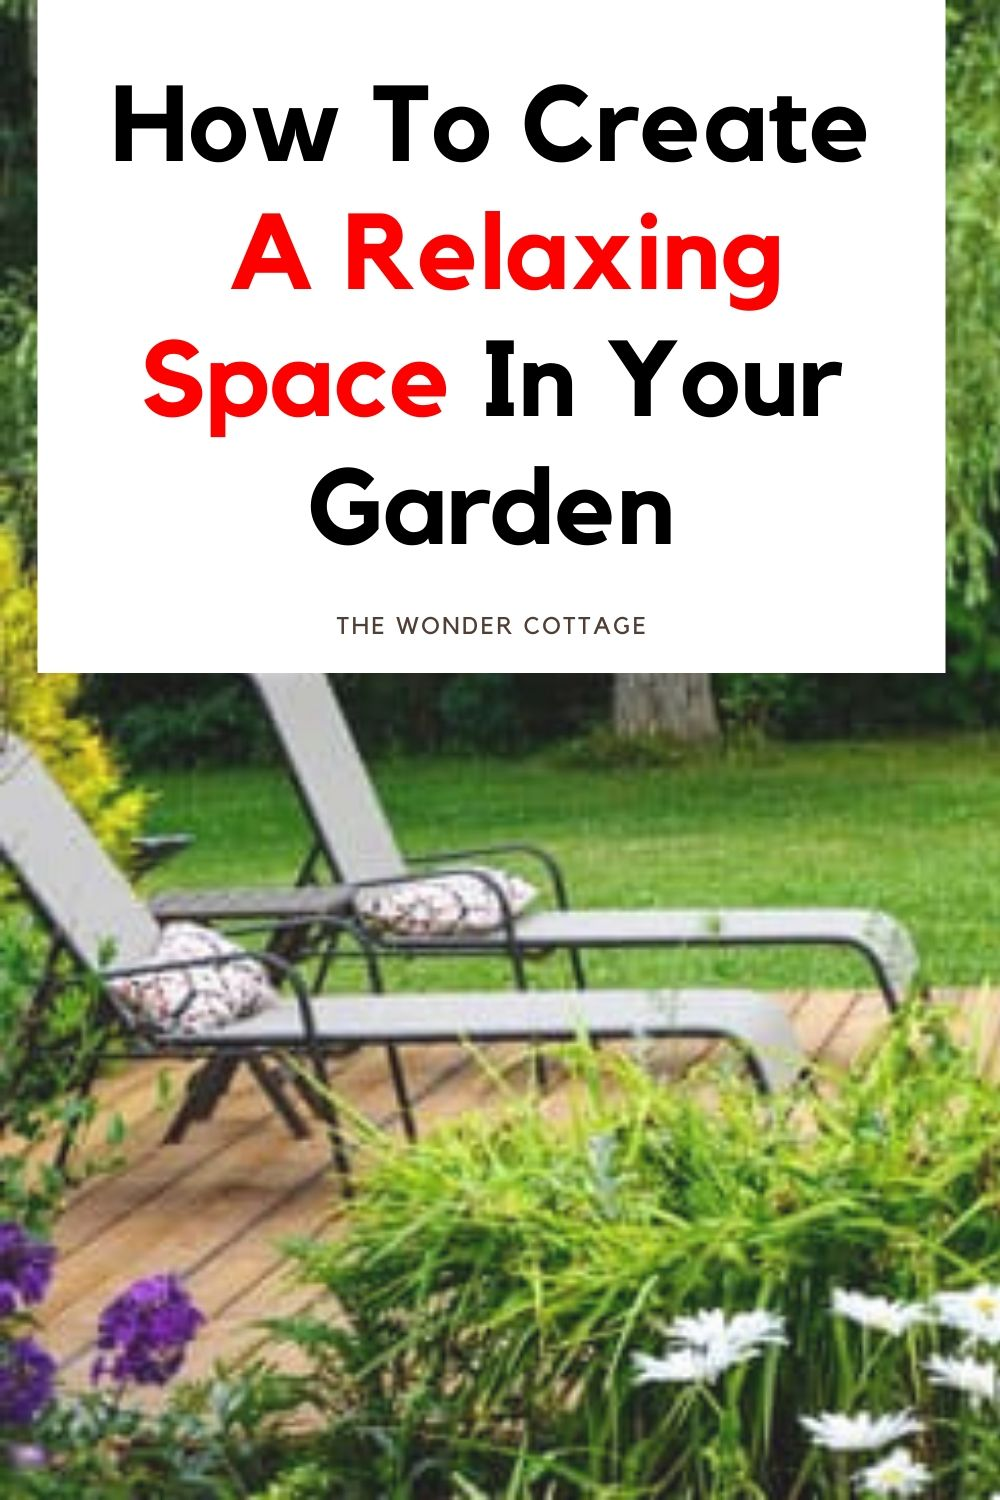 How To Create A Relaxing Space in your Garden